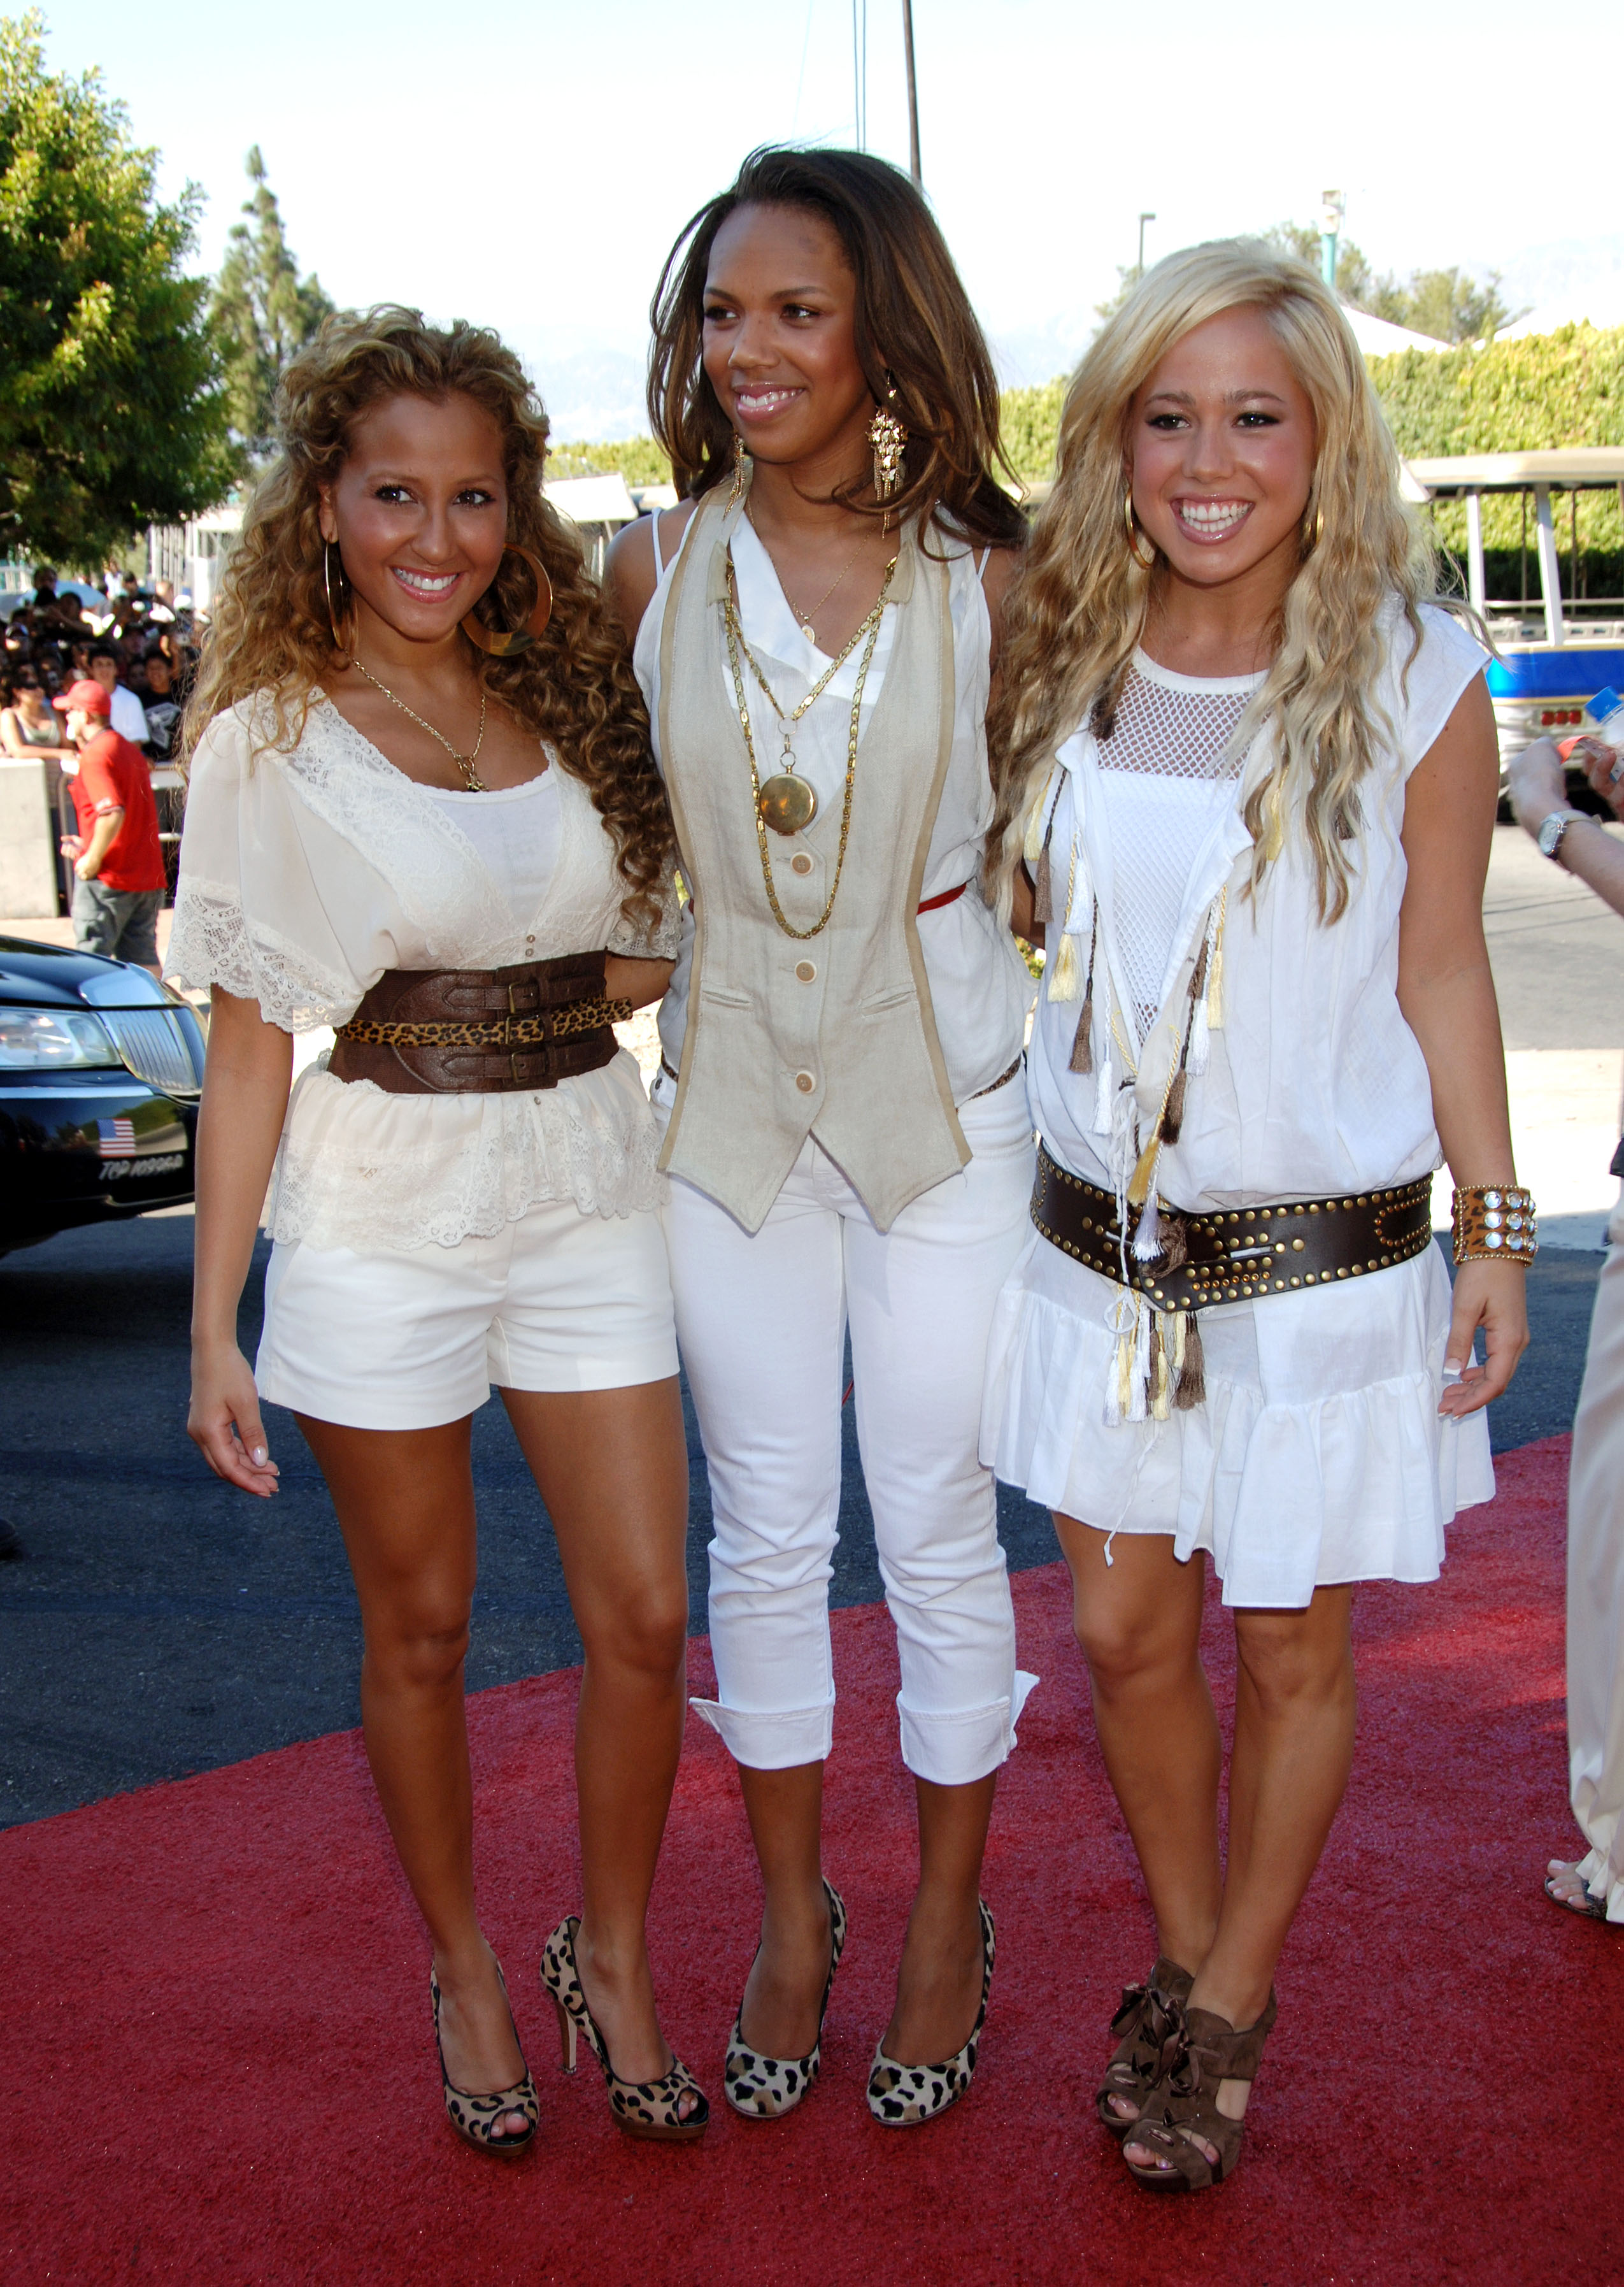 10932_Cheetah_Girls102_122_693lo.jpg